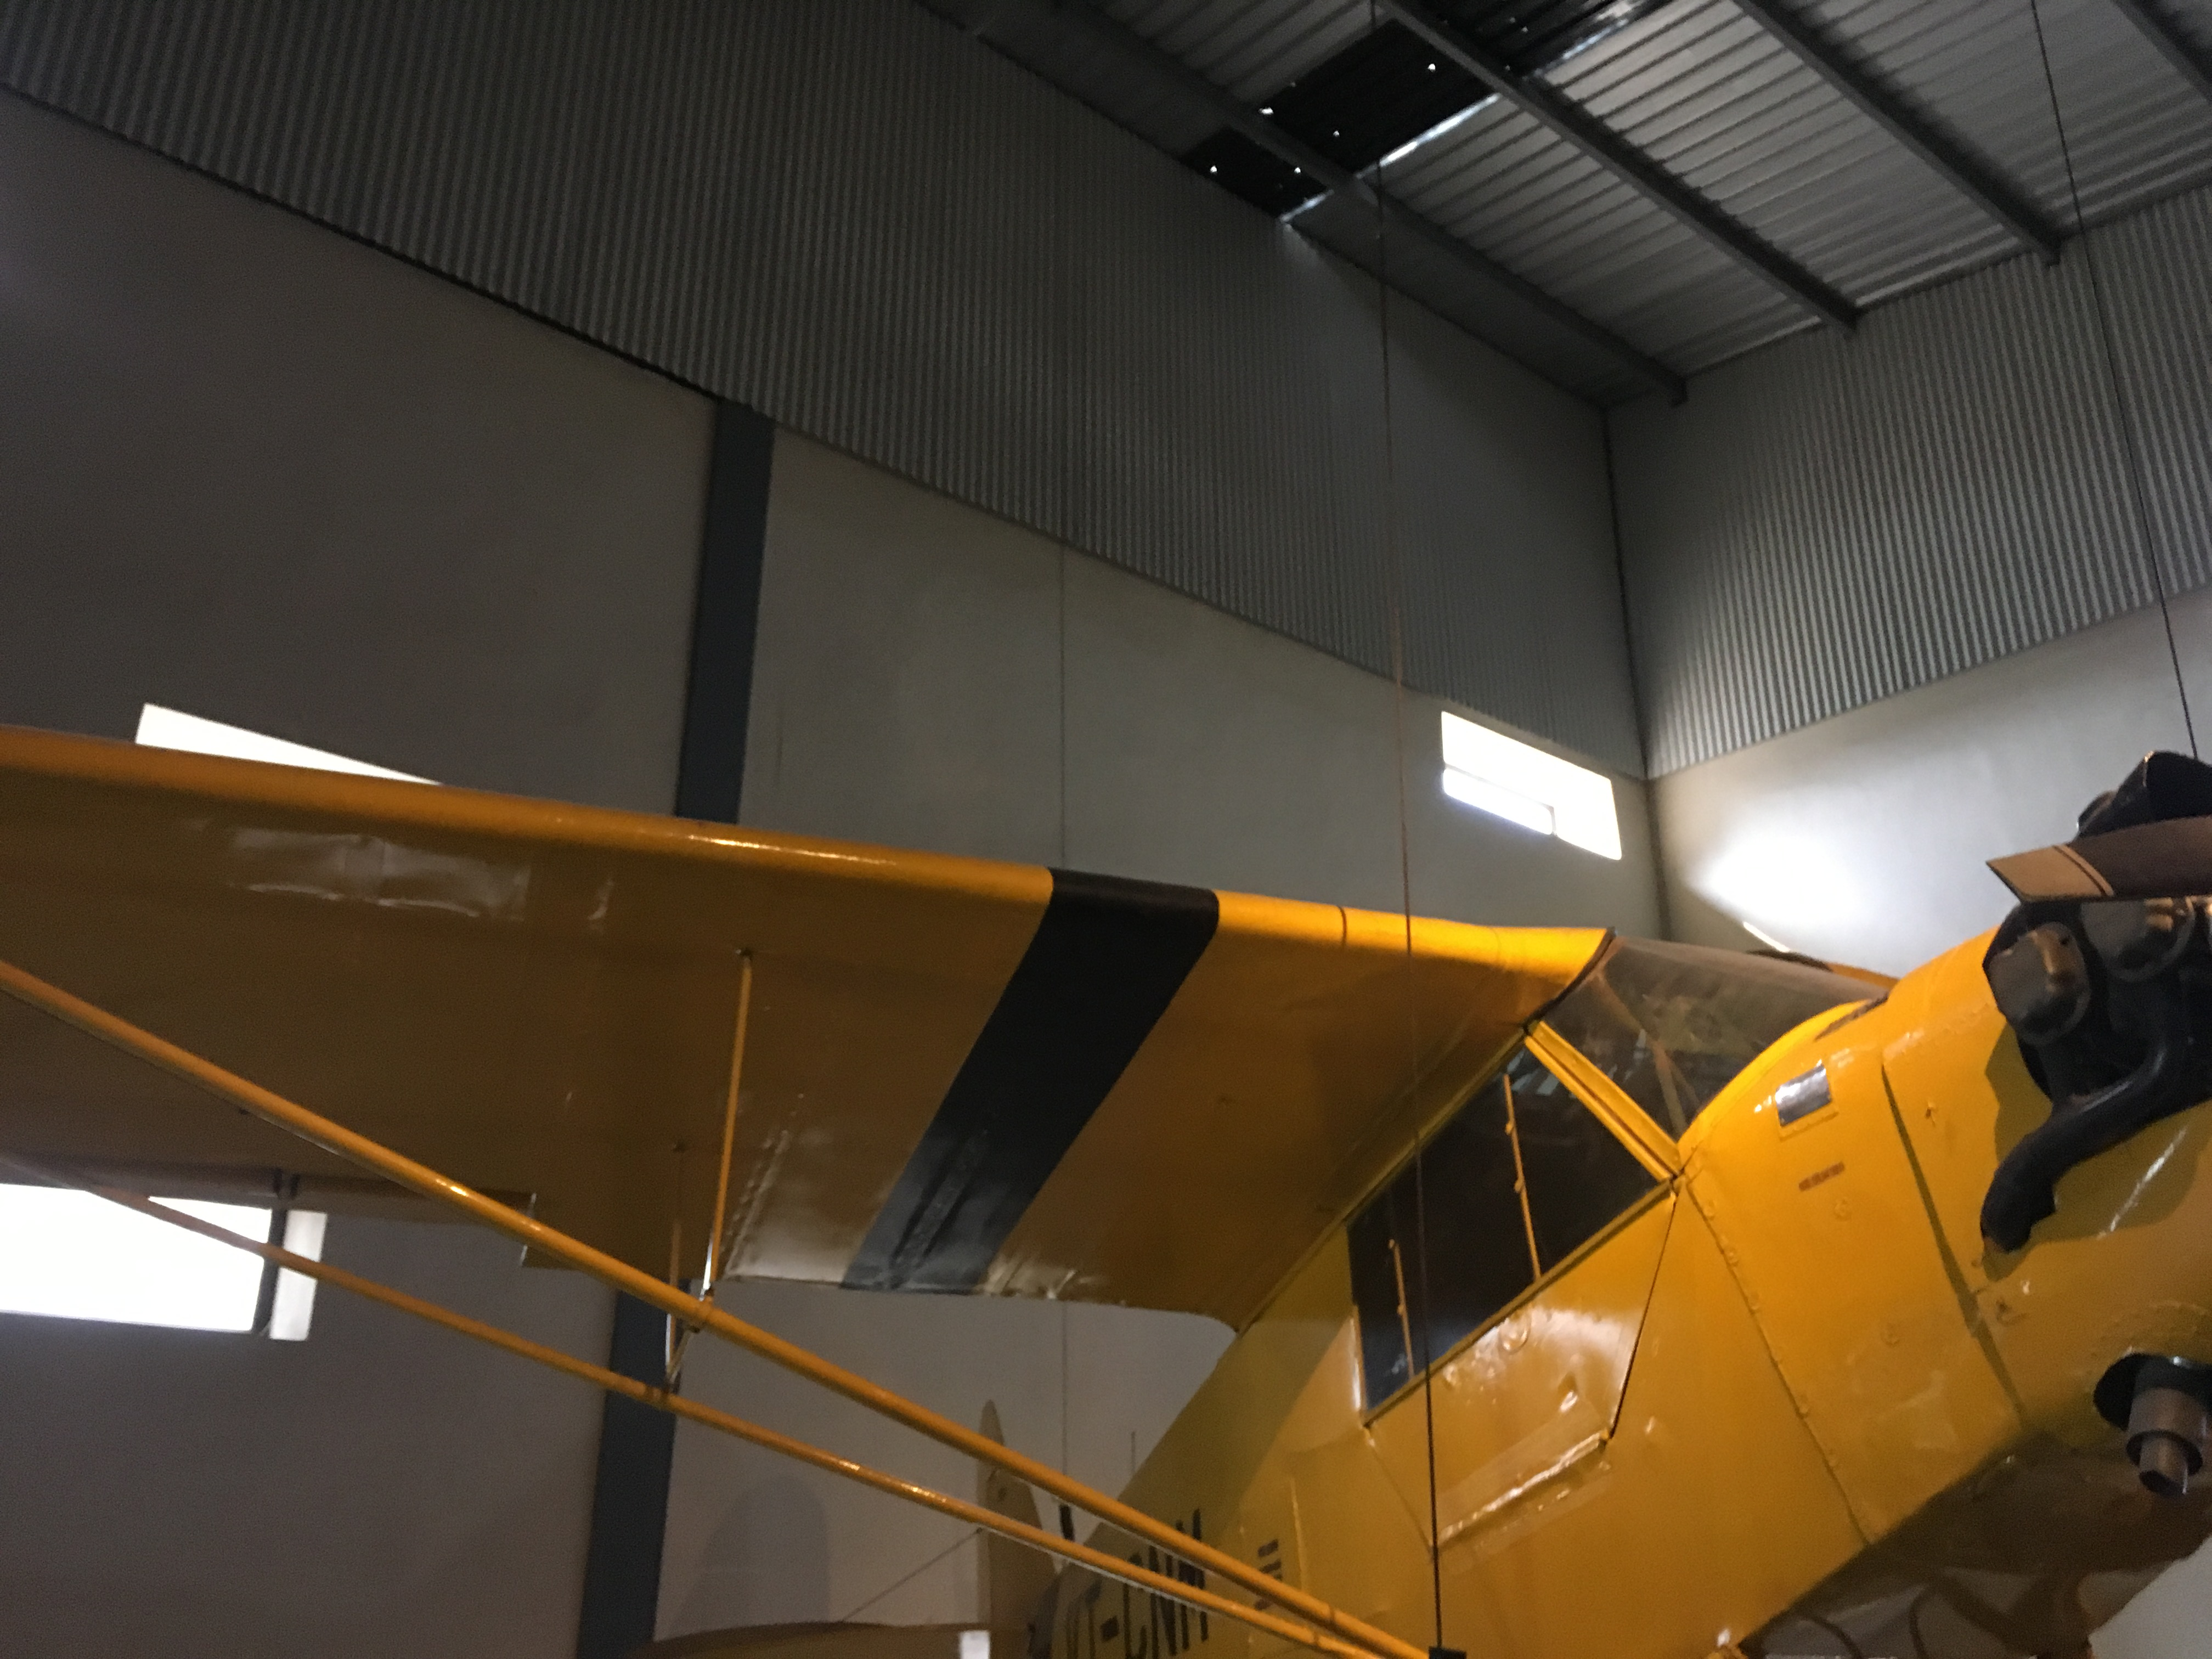 Right side profile of a piper cub aircraft